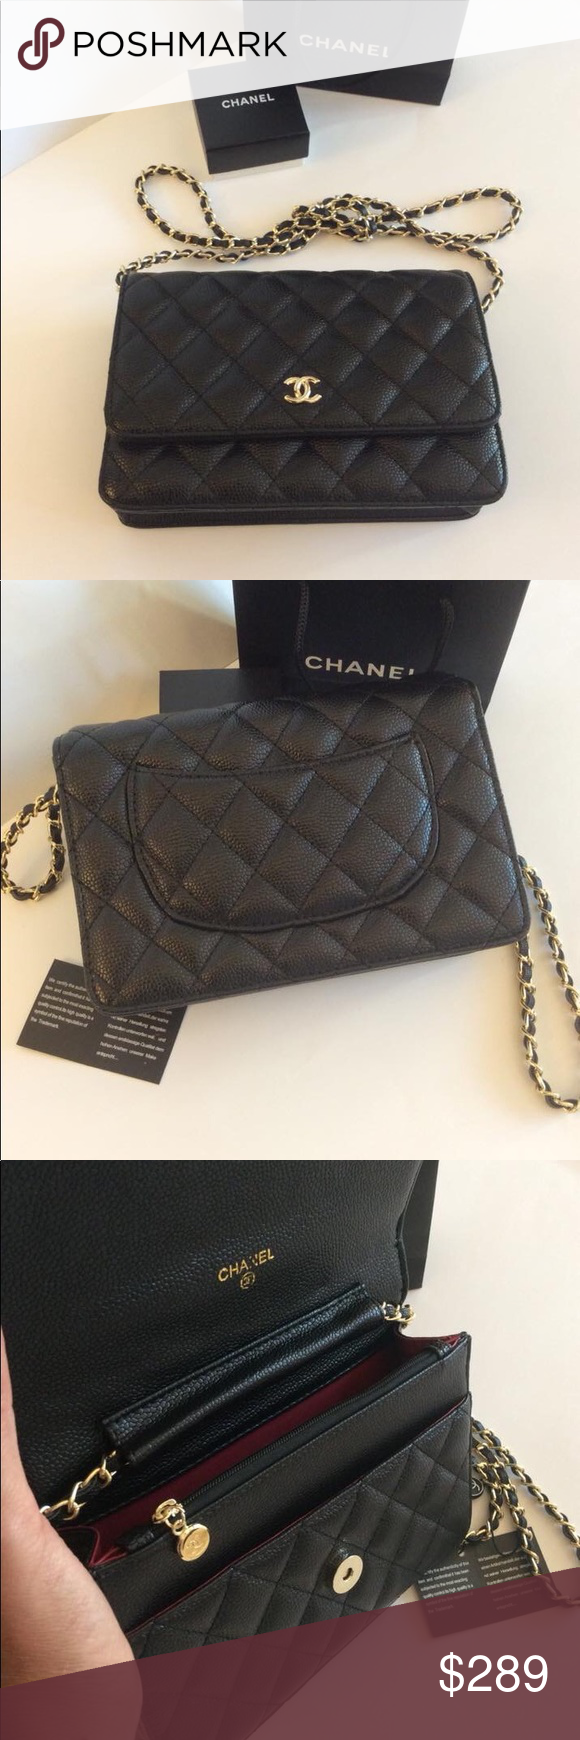 e0a8b01c44e335 New 🎀 Chanel VIP Gift WOC Black Caviar Skin Bag Brand new. Faux leather.